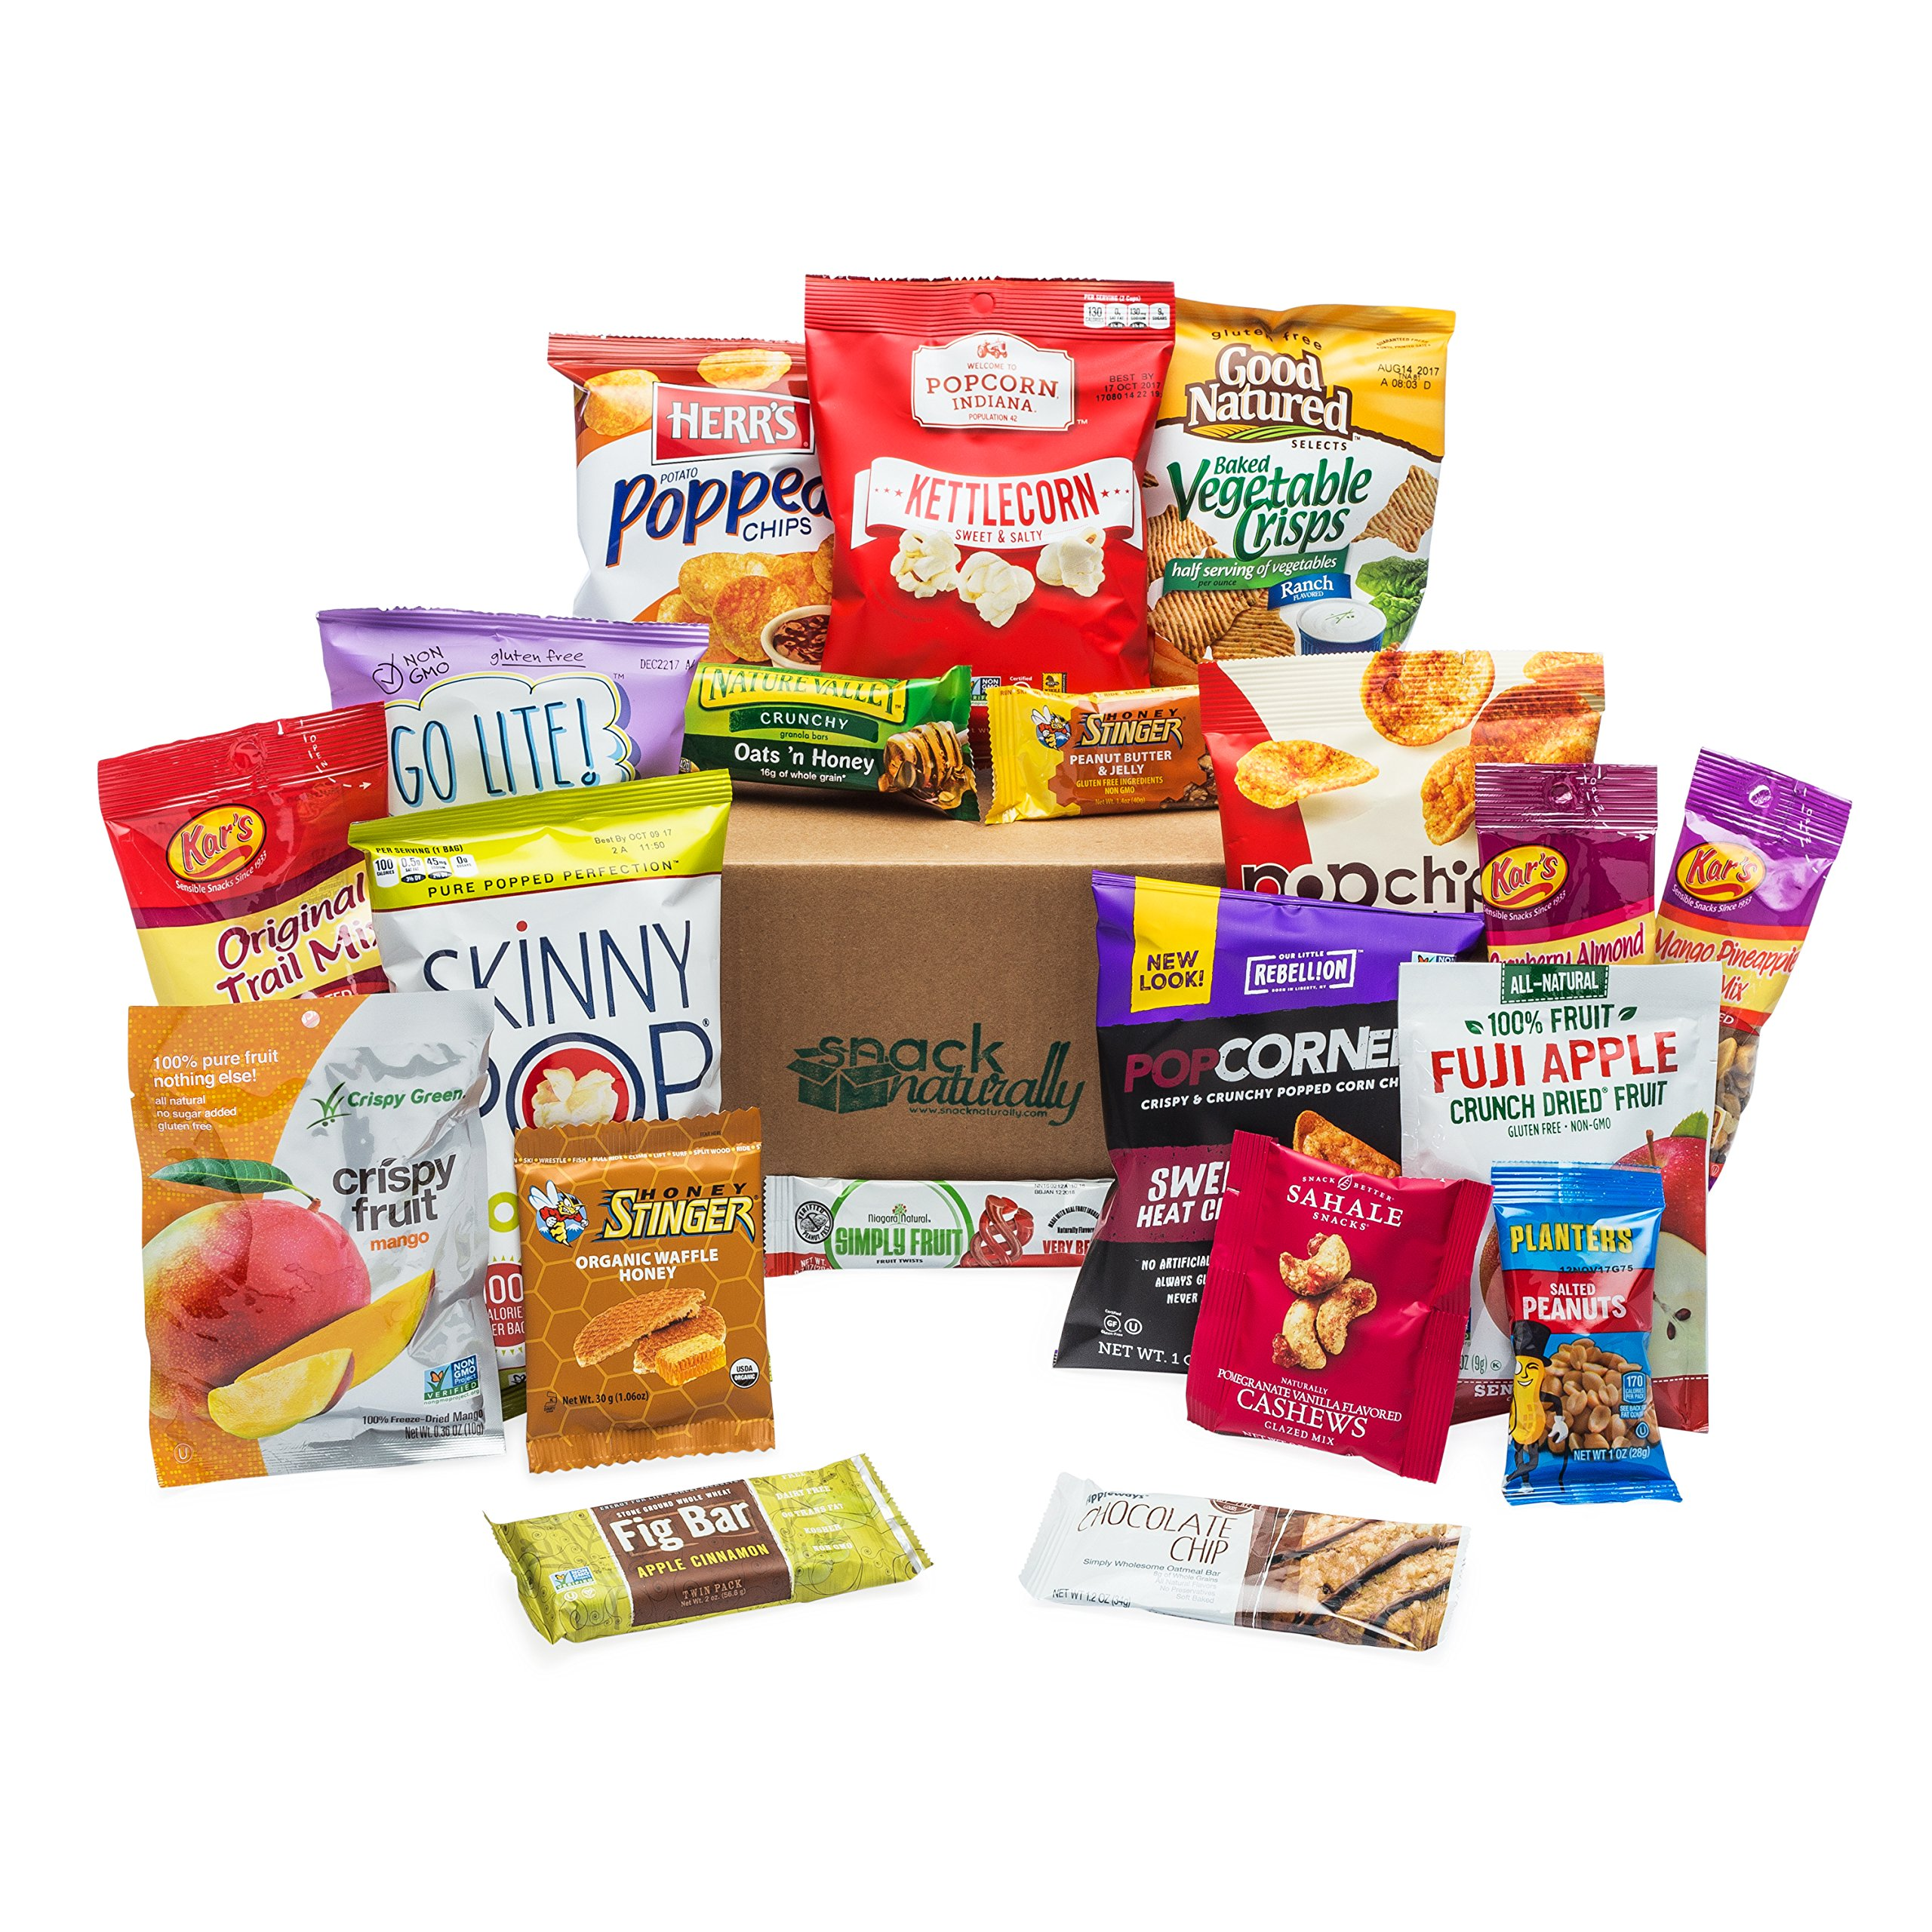 Dried Fruit, Trail Mix, Granola Bars & More Healthy Variety Snacks (20) by Snack Naturally